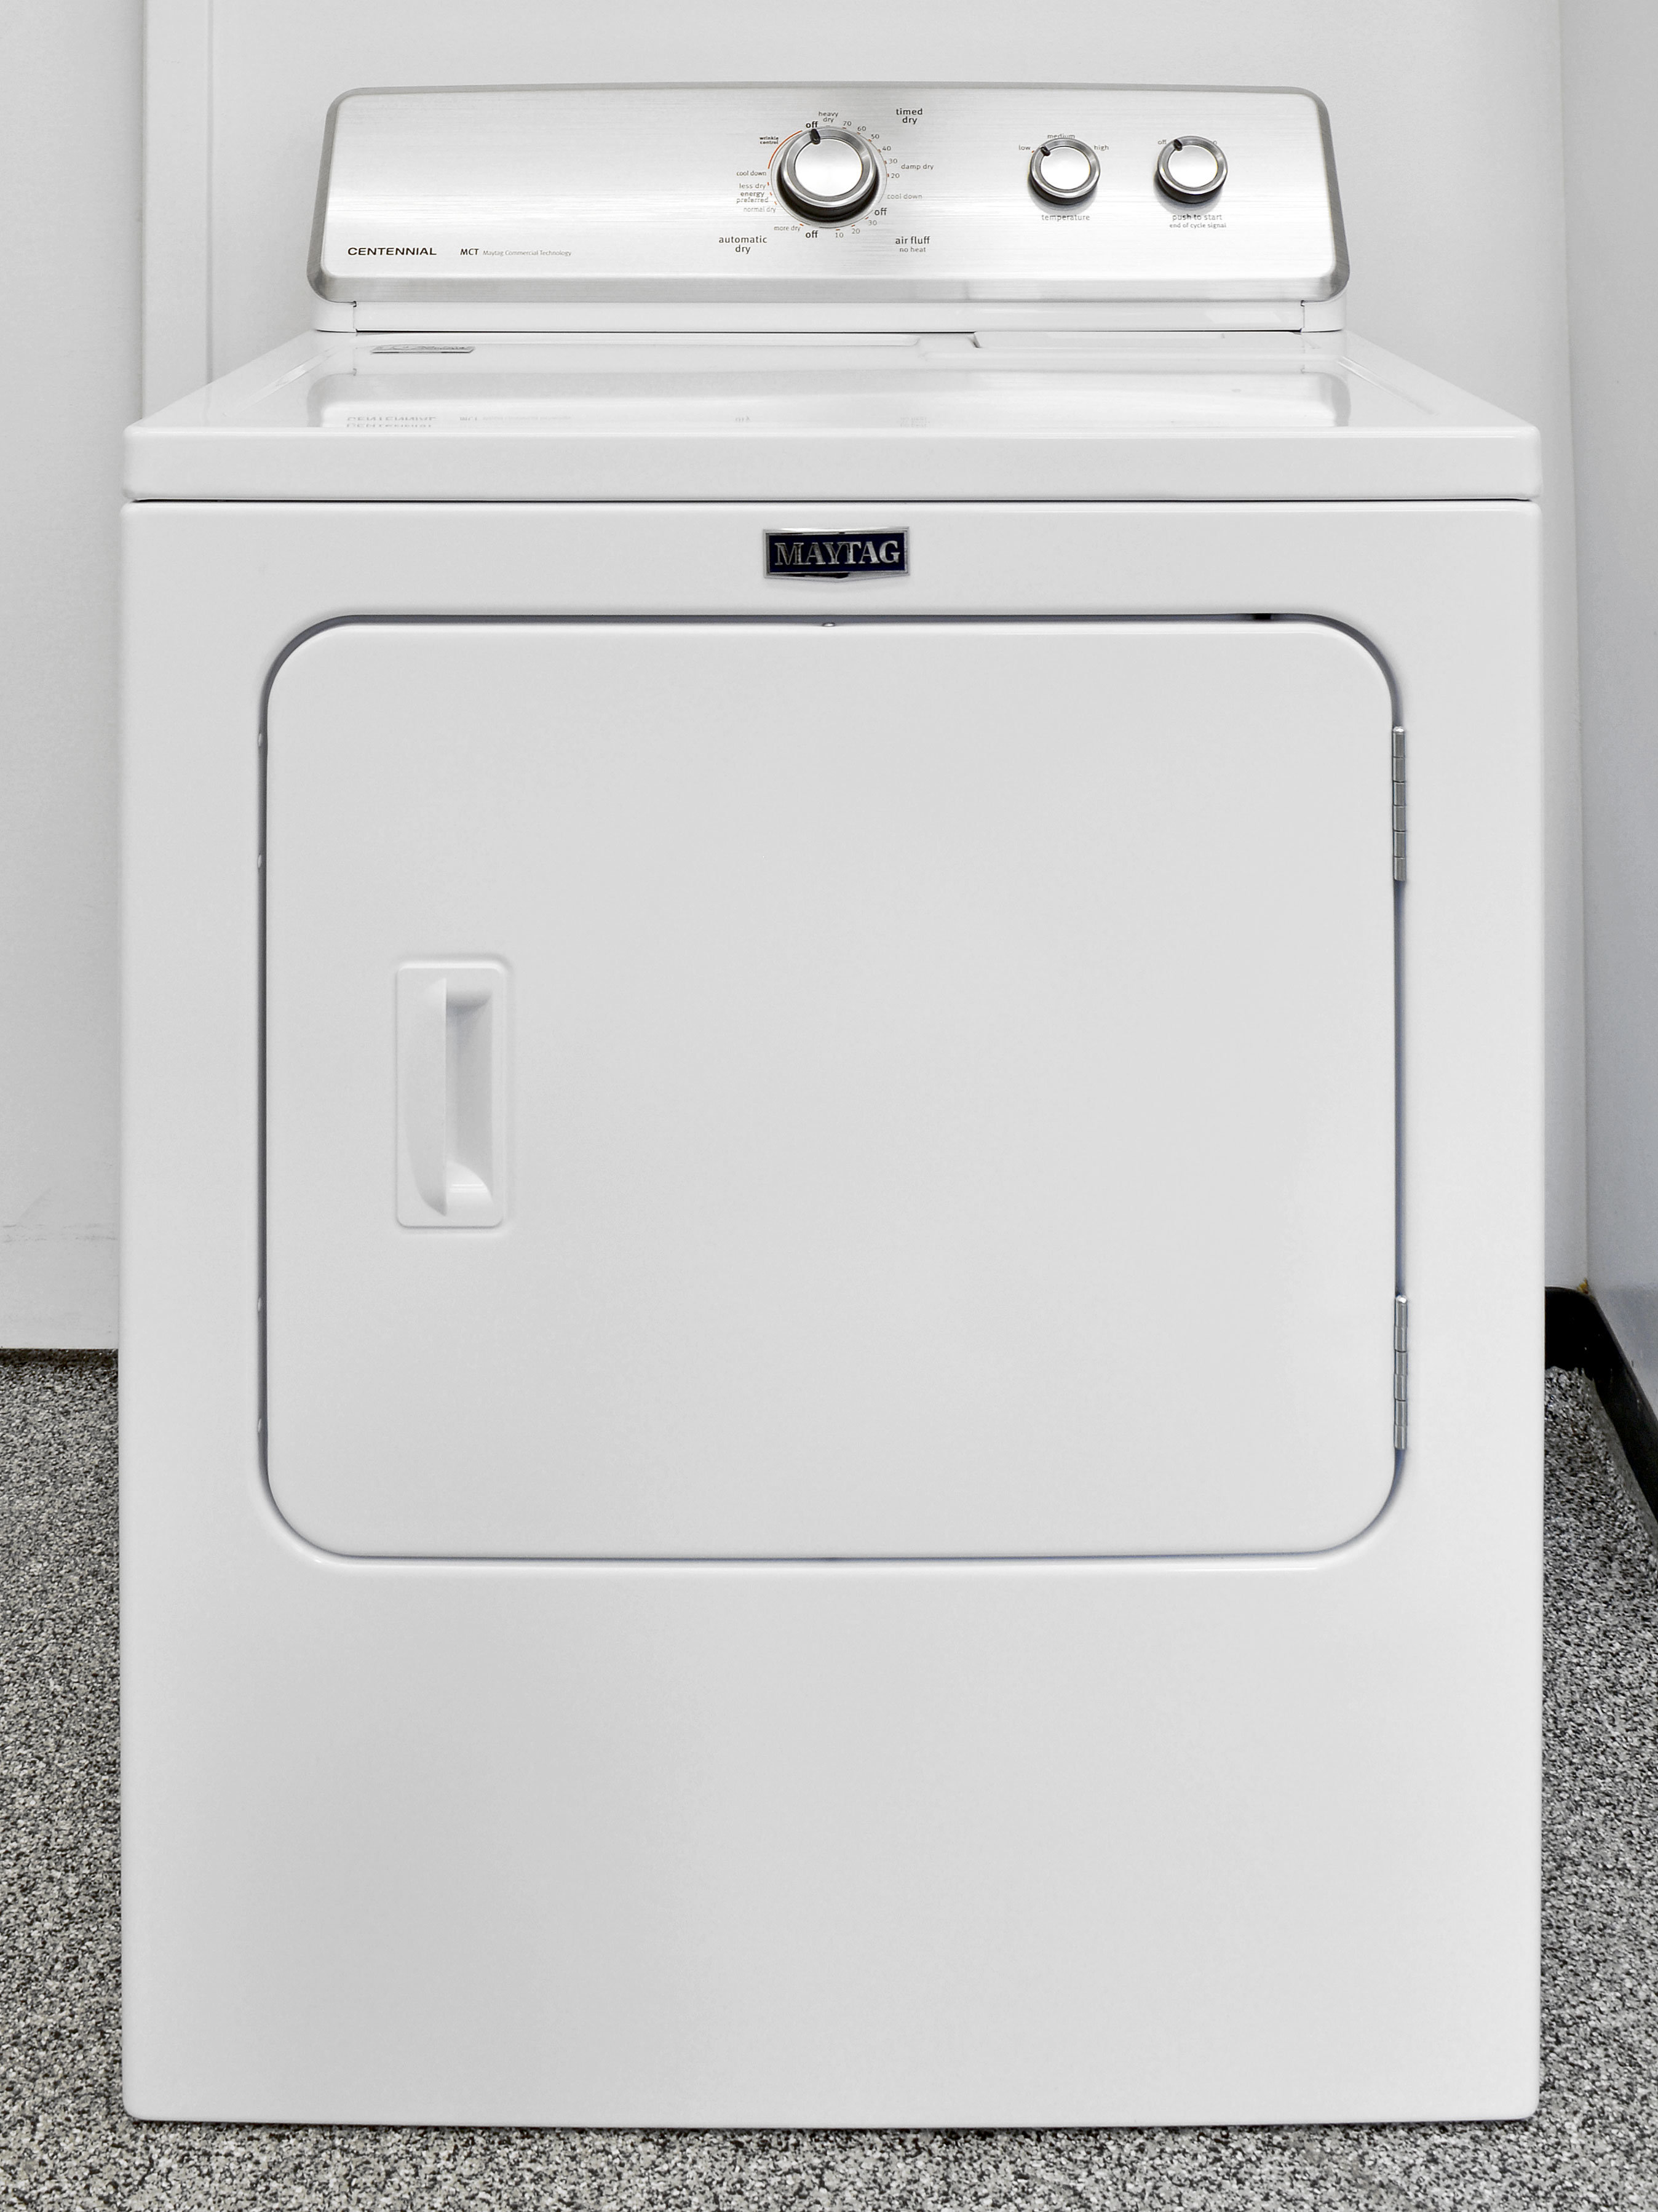 The Maytag Centennial MEDC215EW is a basic, budget-friendly white good appliance.